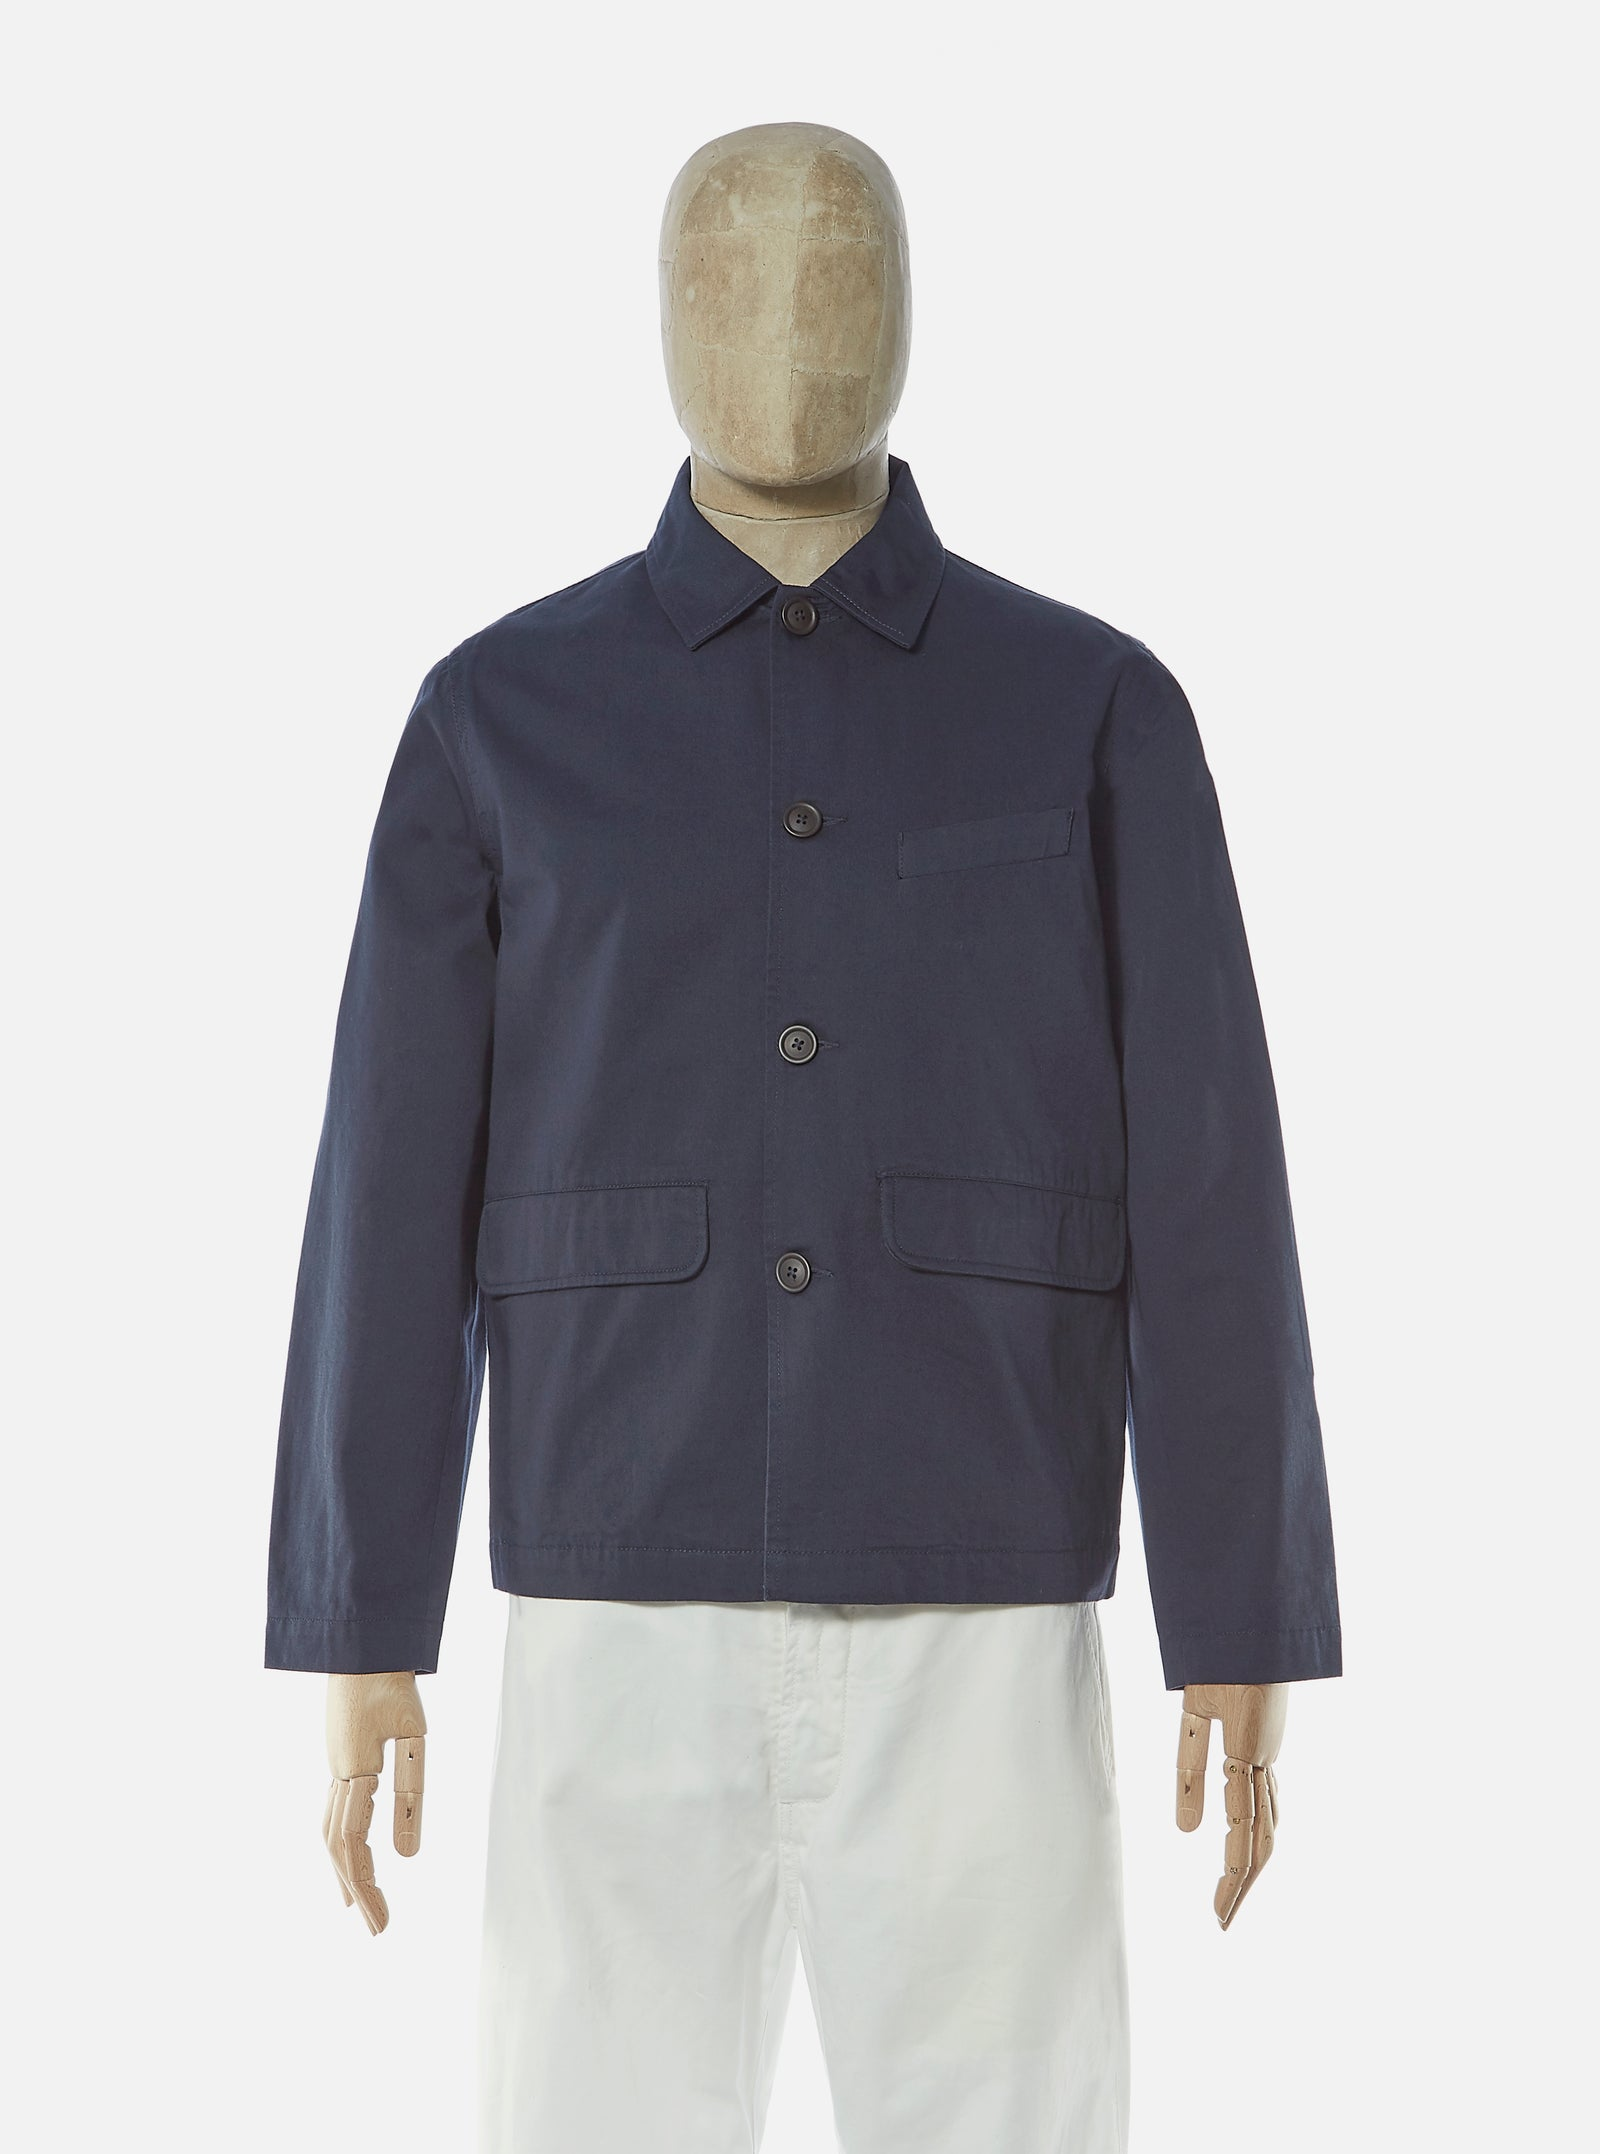 Universal Works Warmus Jacket in Navy Twill